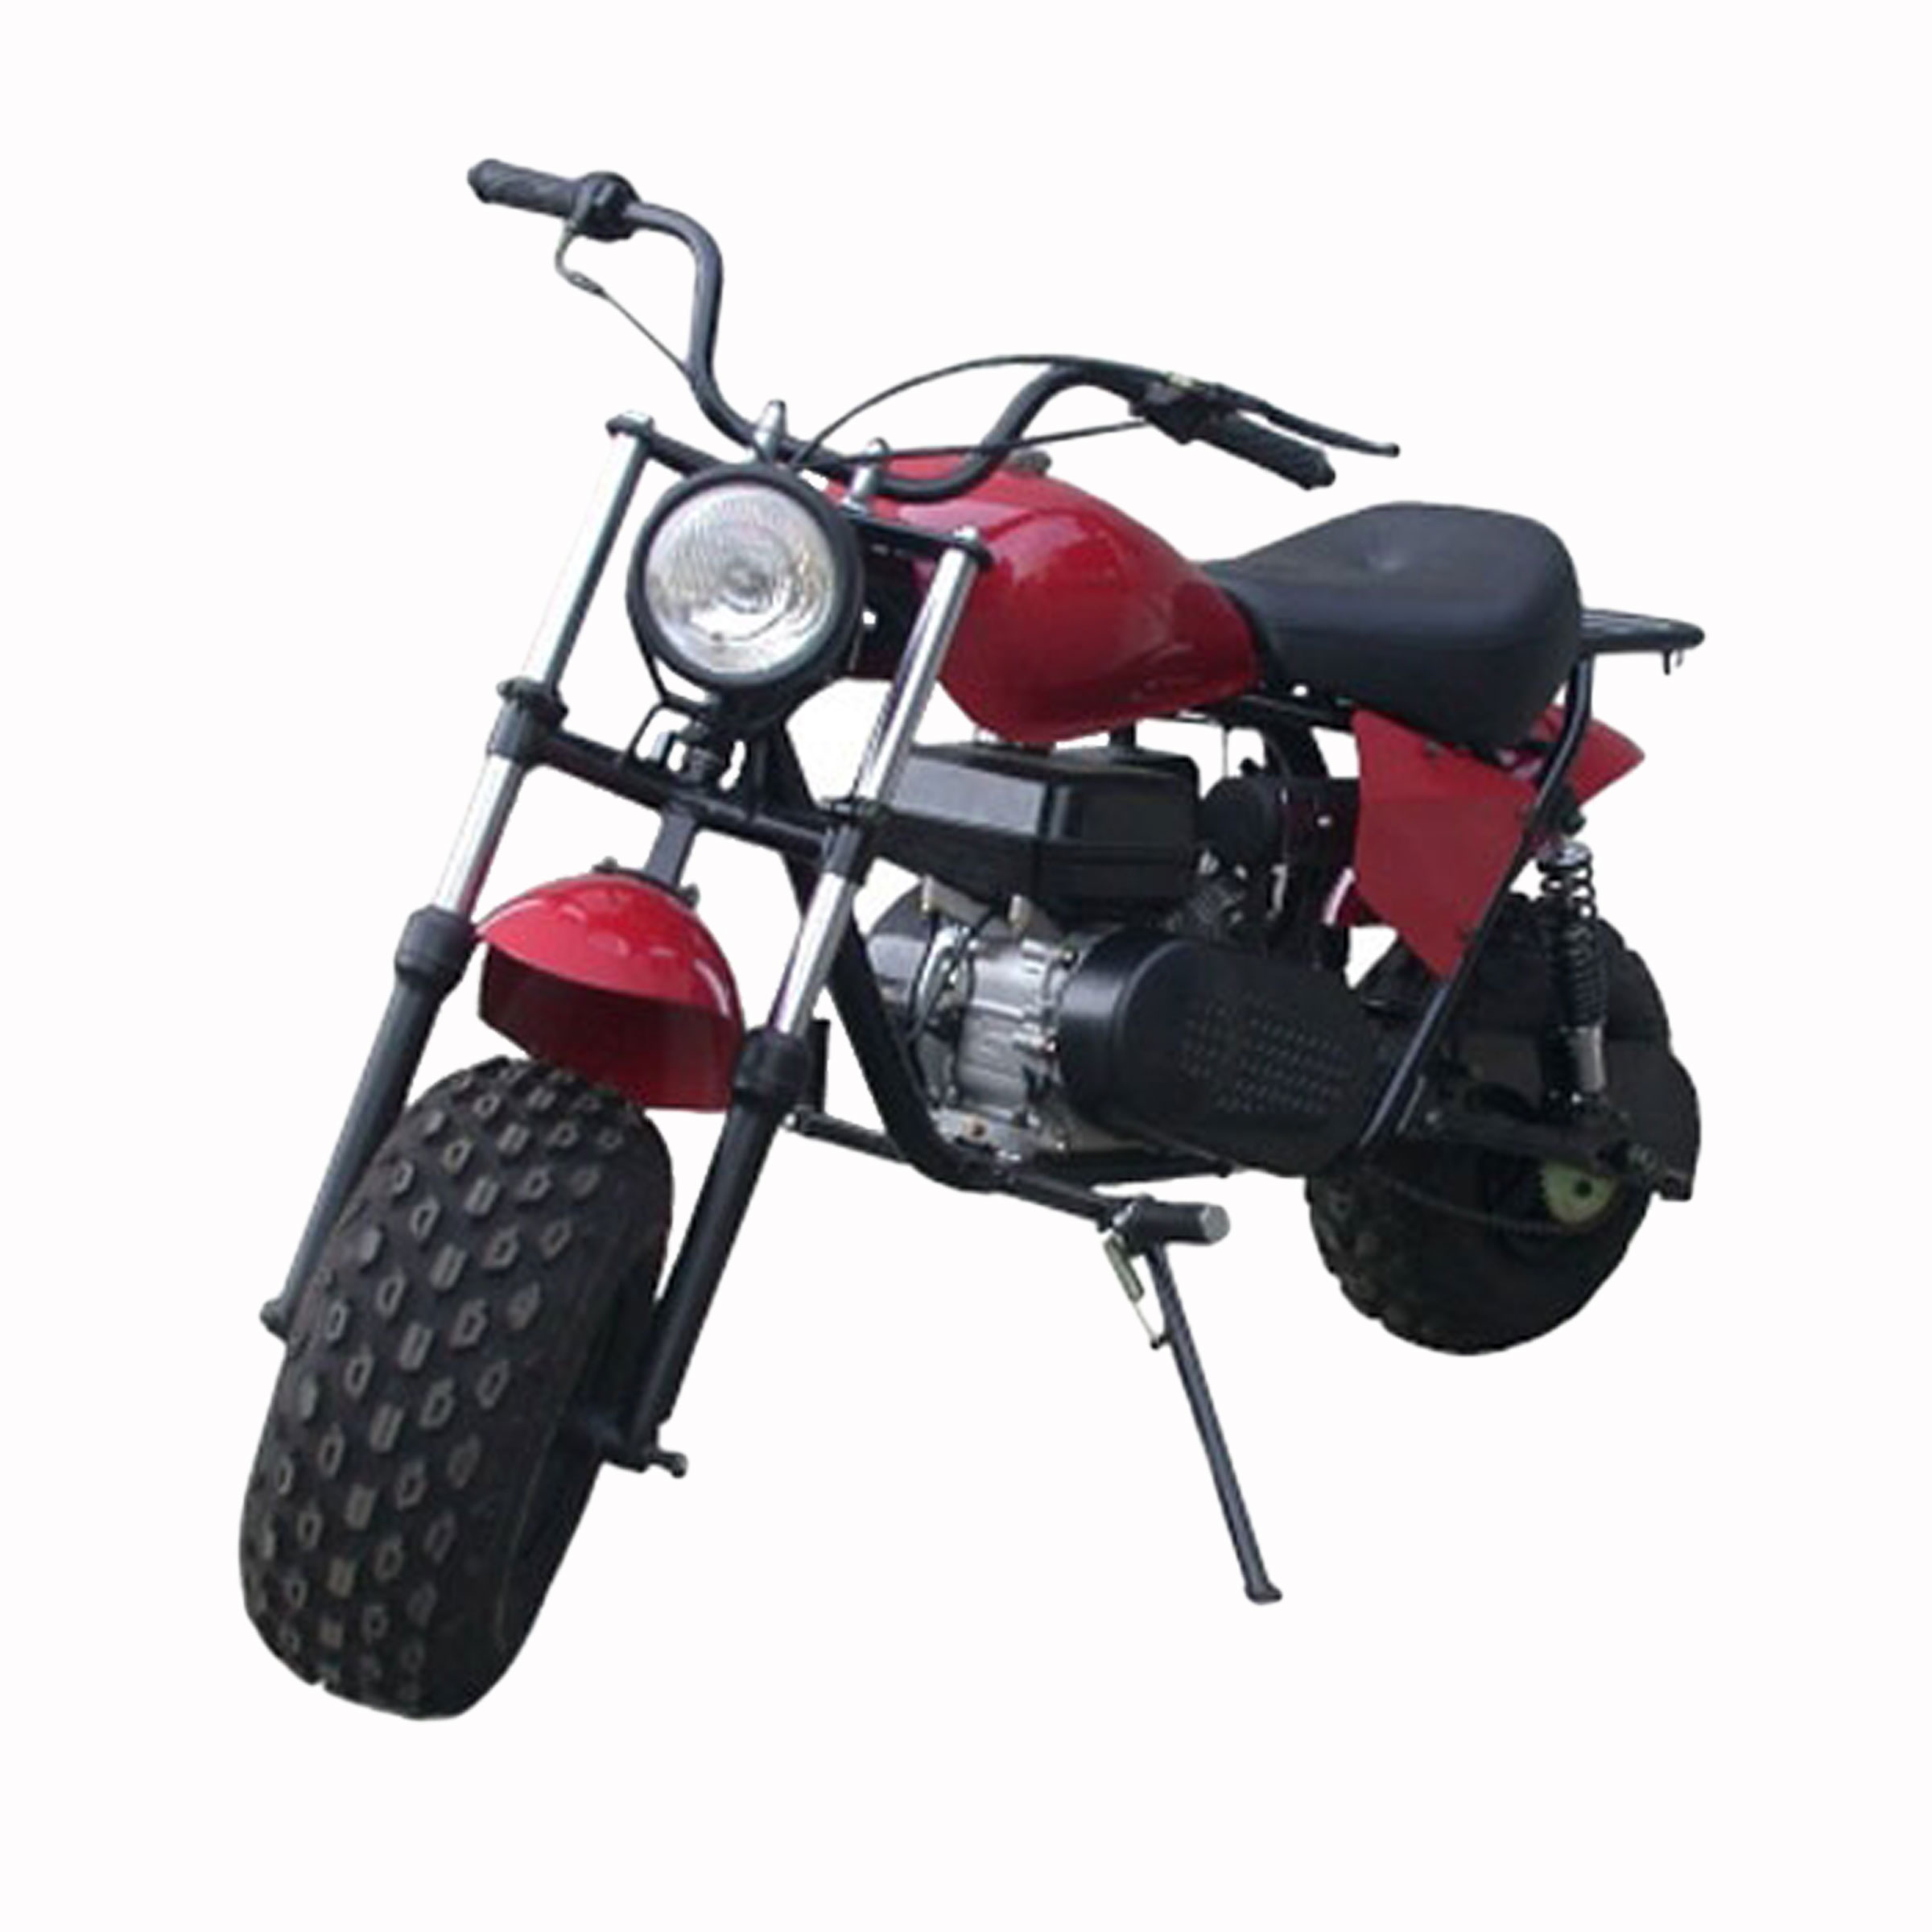 How to choose a mini motorcycle